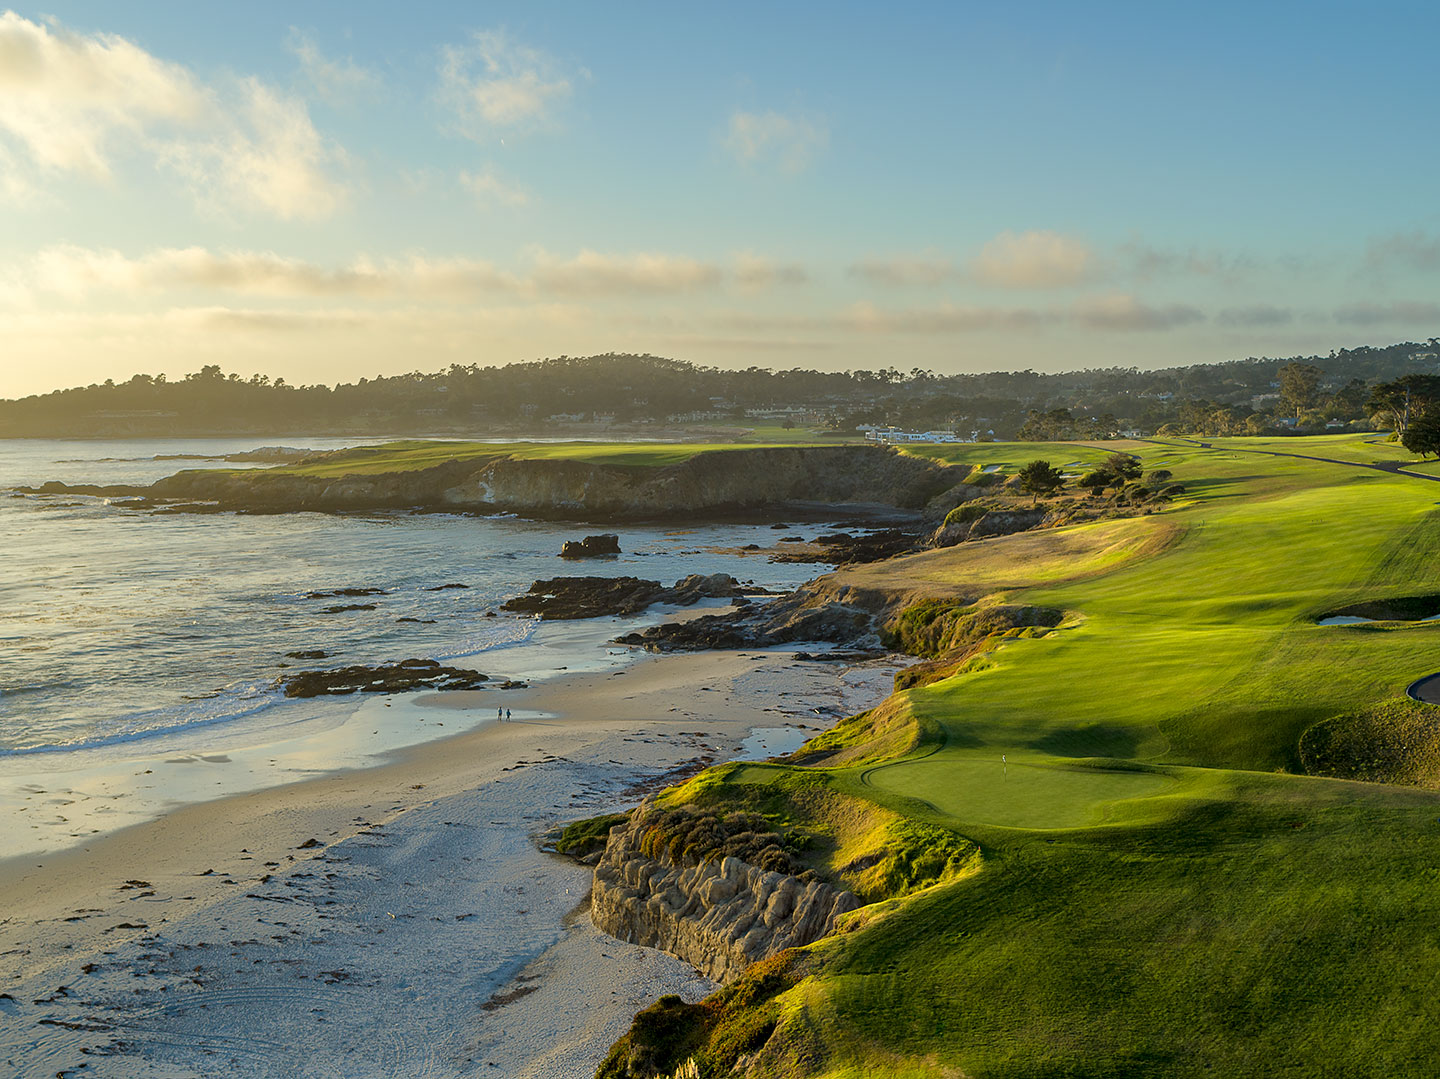 9th hole at Pebble Beach